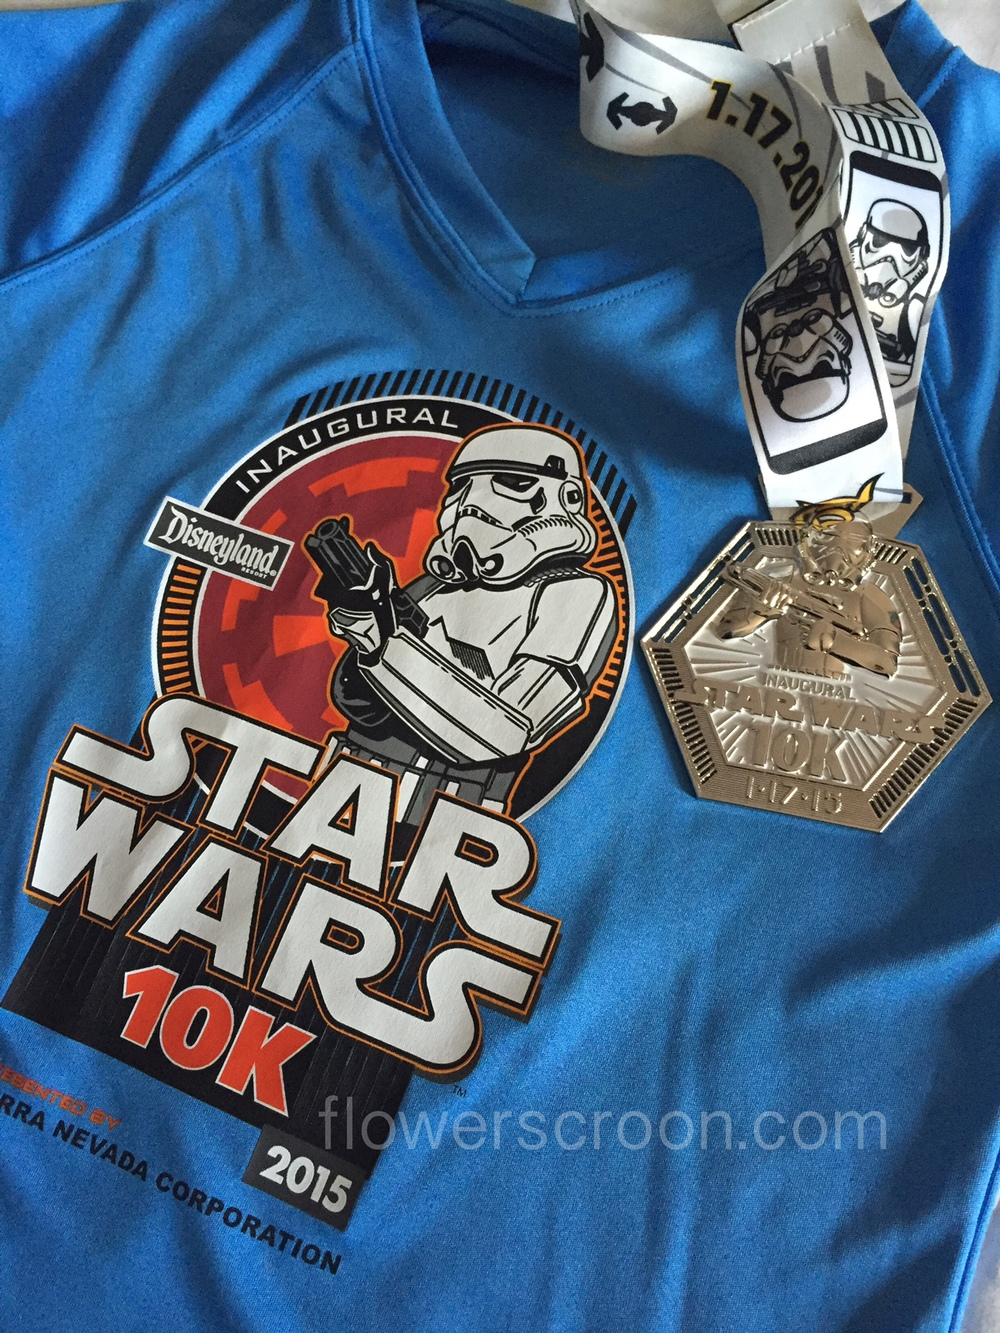 rundisney star wars 10k finisher medal shirt